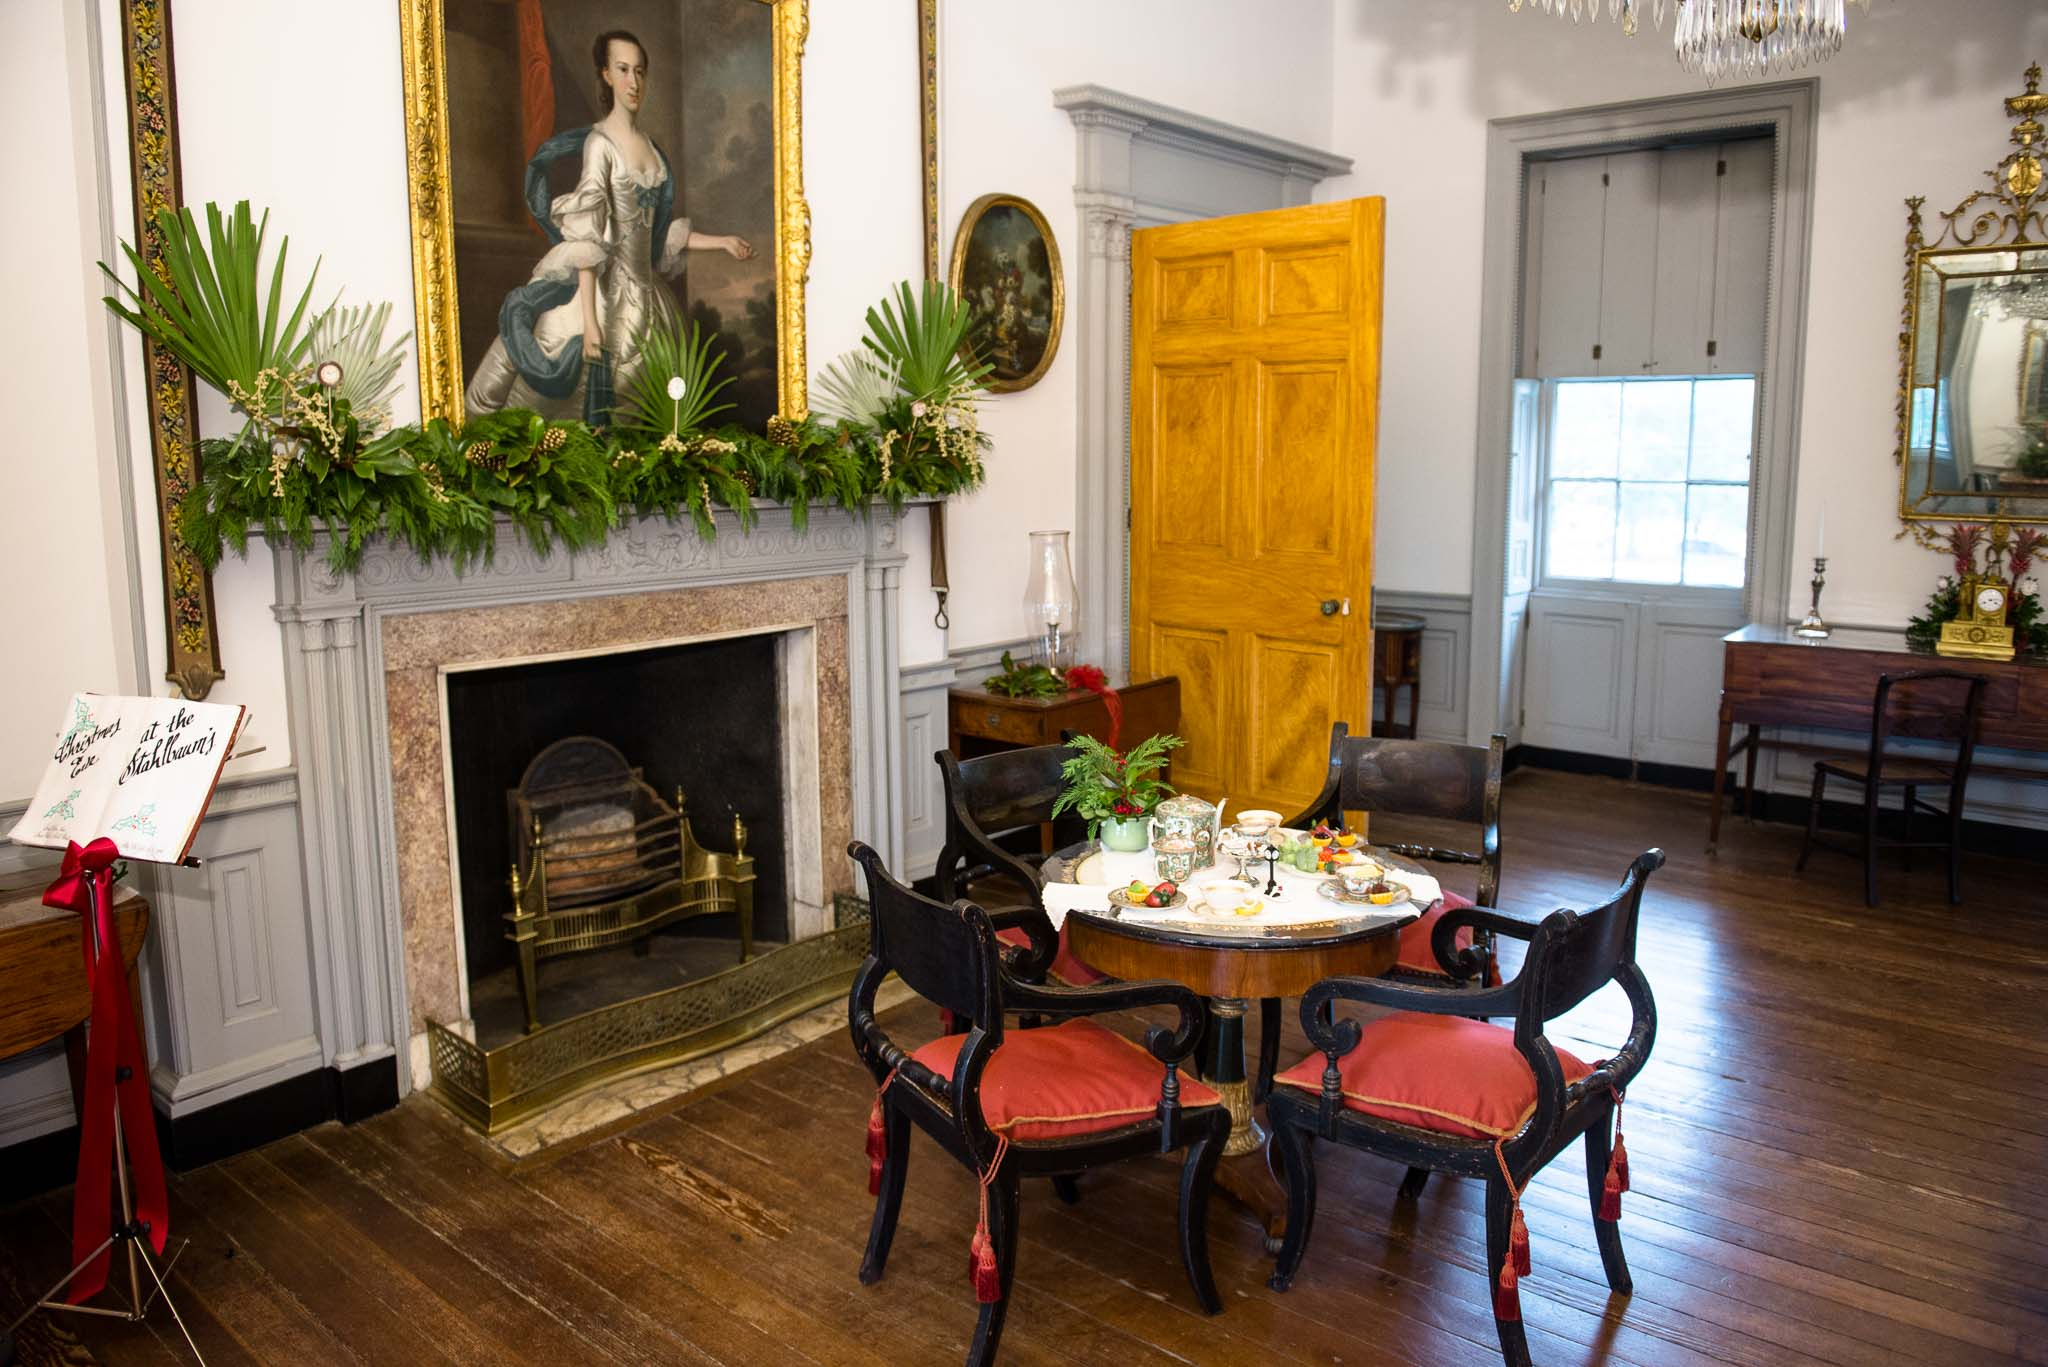 Holiday Open House at the Manigault House